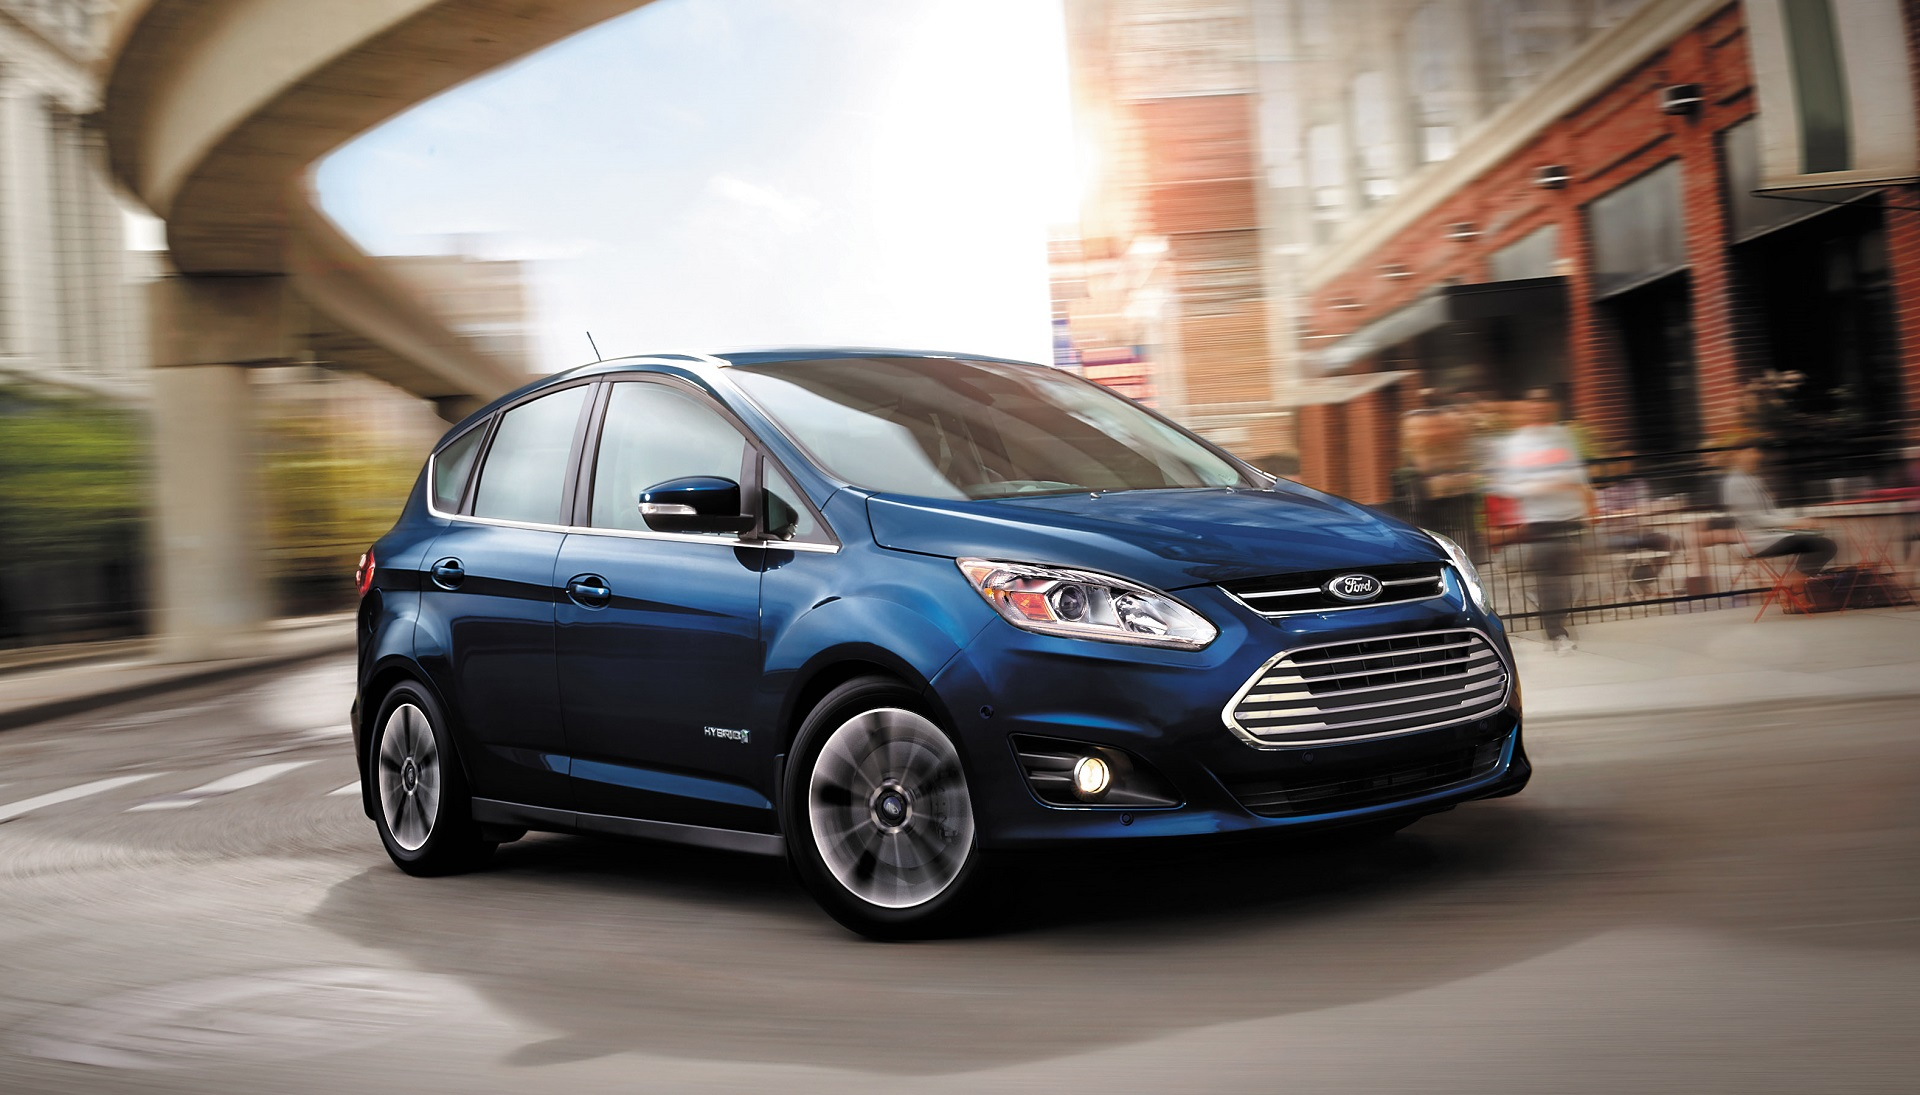 Fort Dodge Ford >> 2017 Ford C-Max vs. 2017 Toyota Prius: Compare Cars